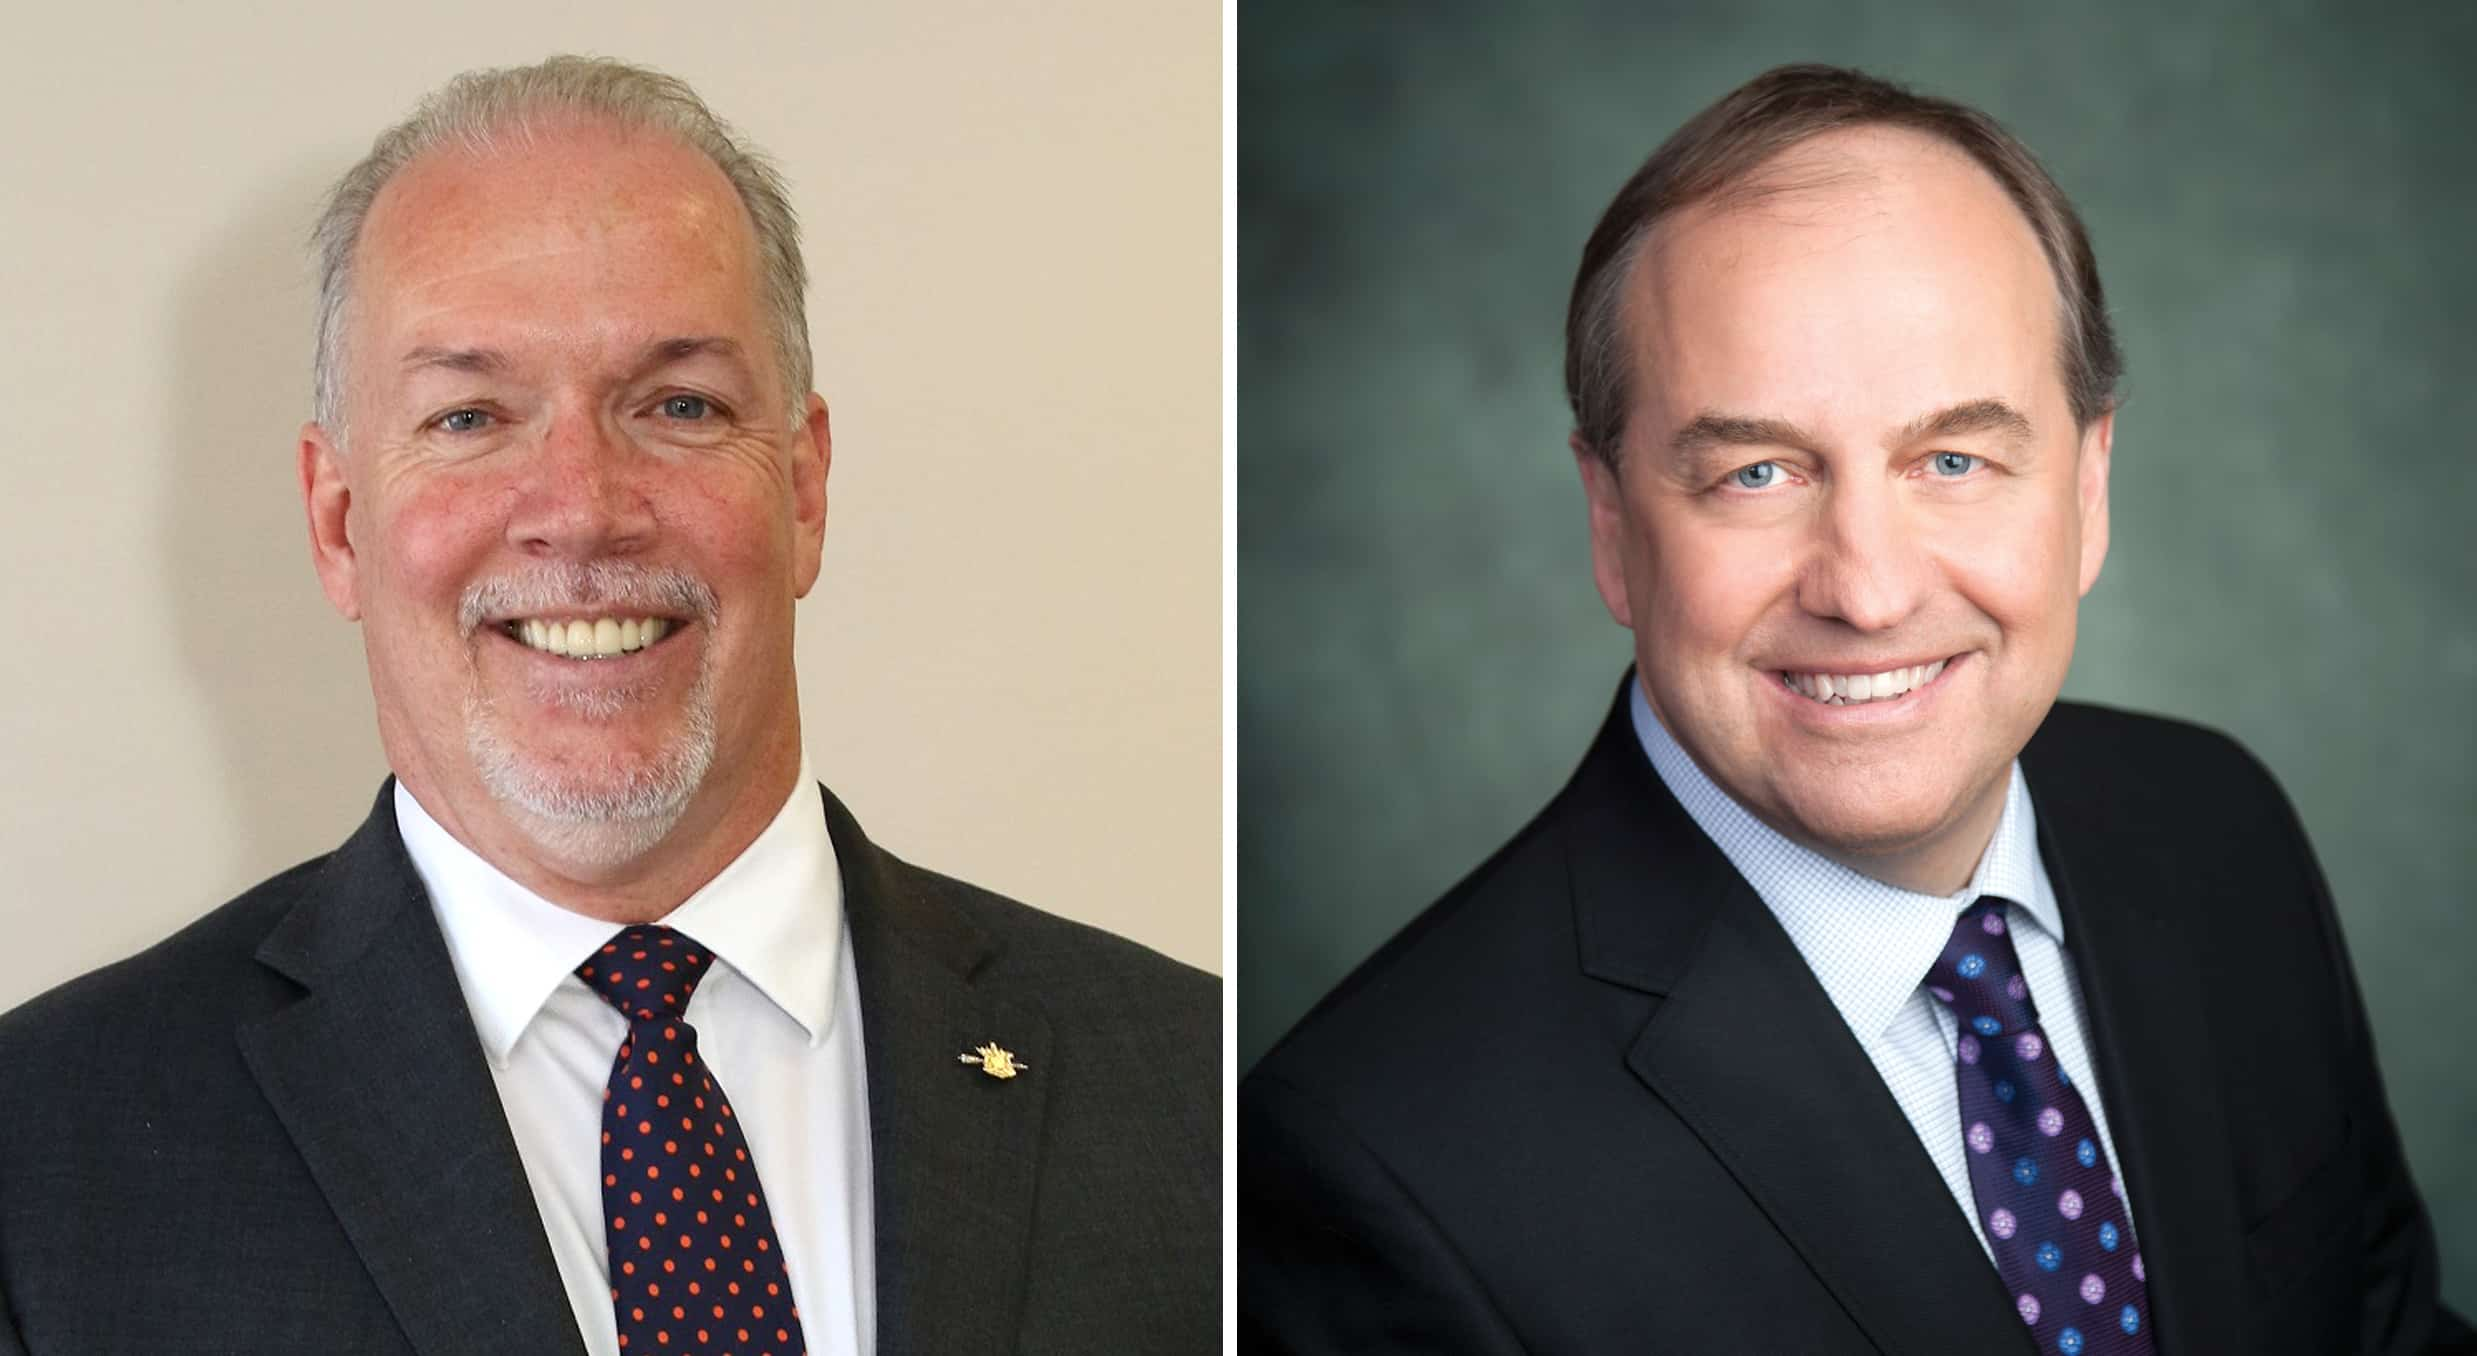 Clark's political games are hurting British Columbians, say Horgan and Weaver